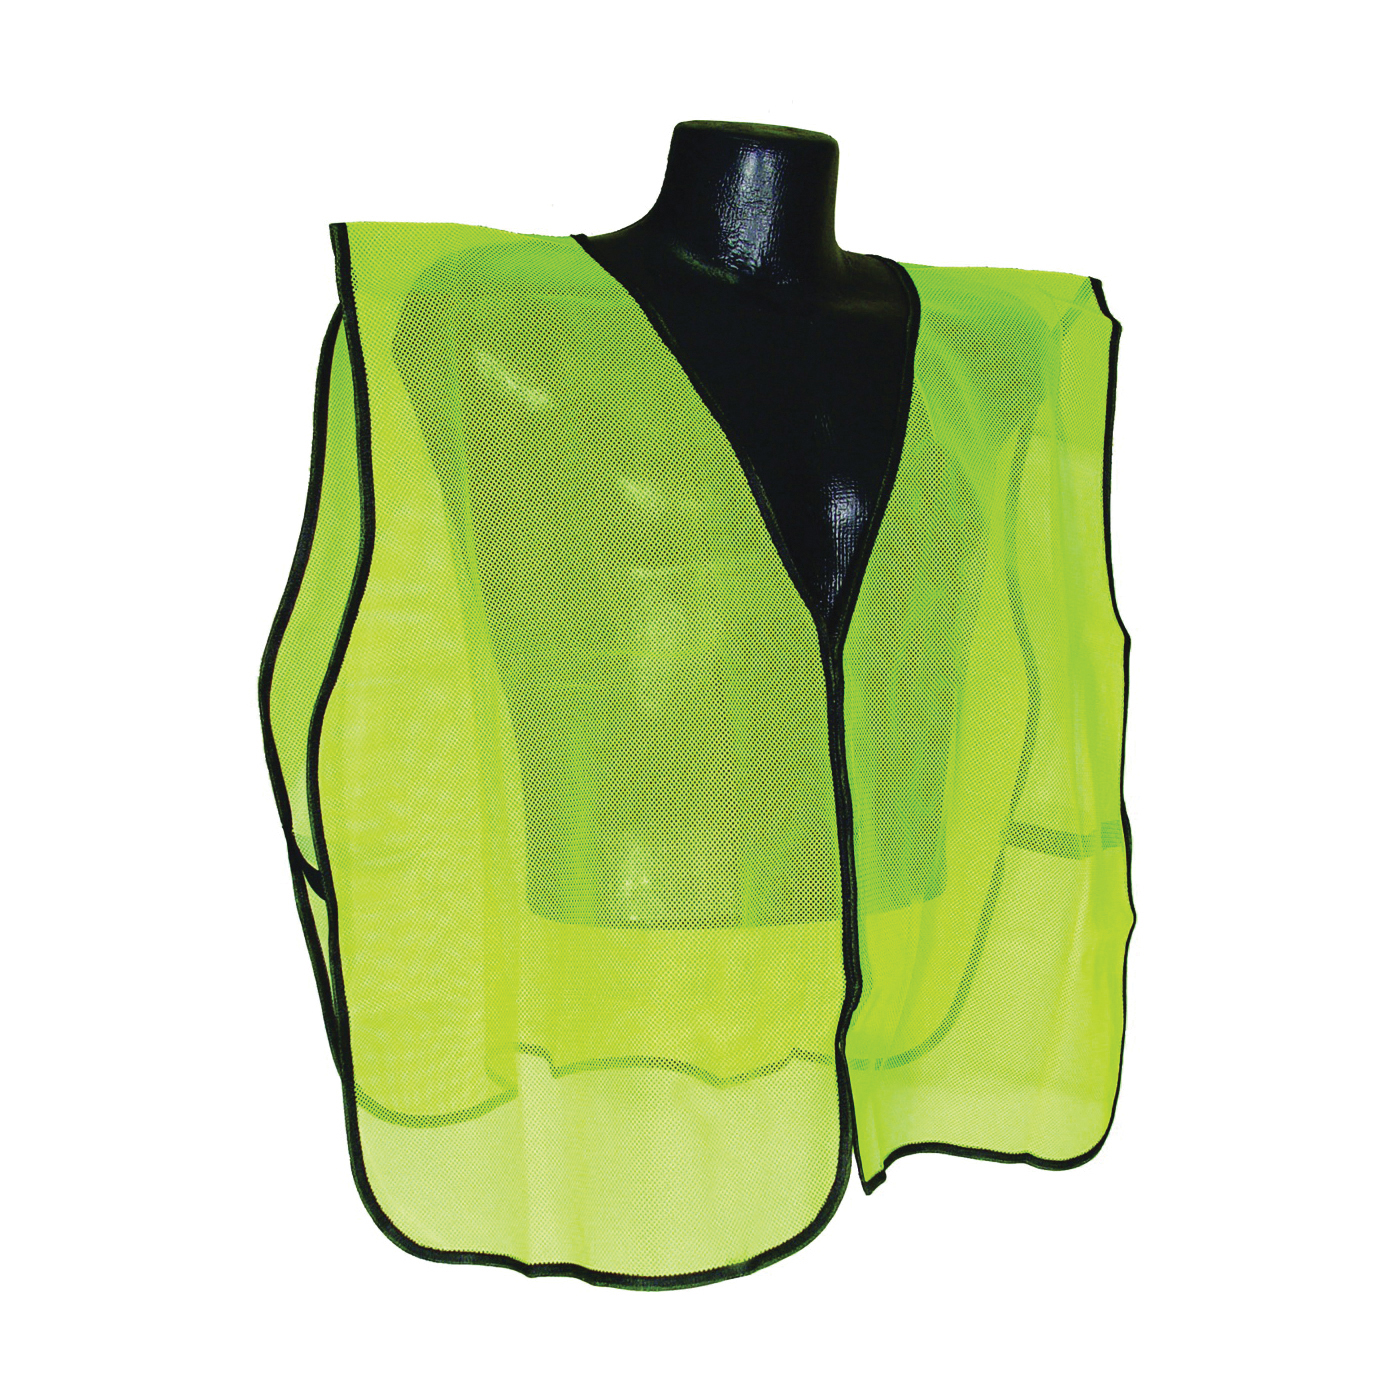 Picture of RADWEAR SVG Safety Vest, One-Size, Polyester, Green/Silver, Hook-and-Loop Closure